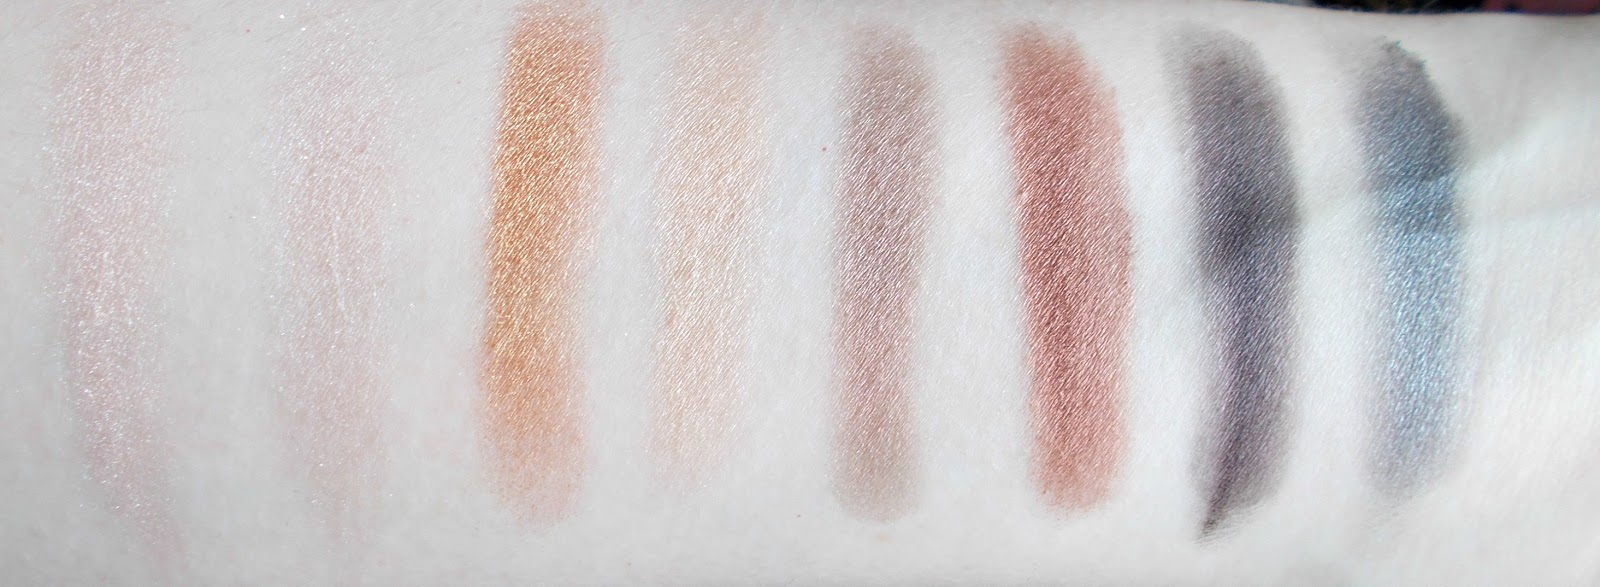 Lorac PRO palette bottom row shimmer swatches